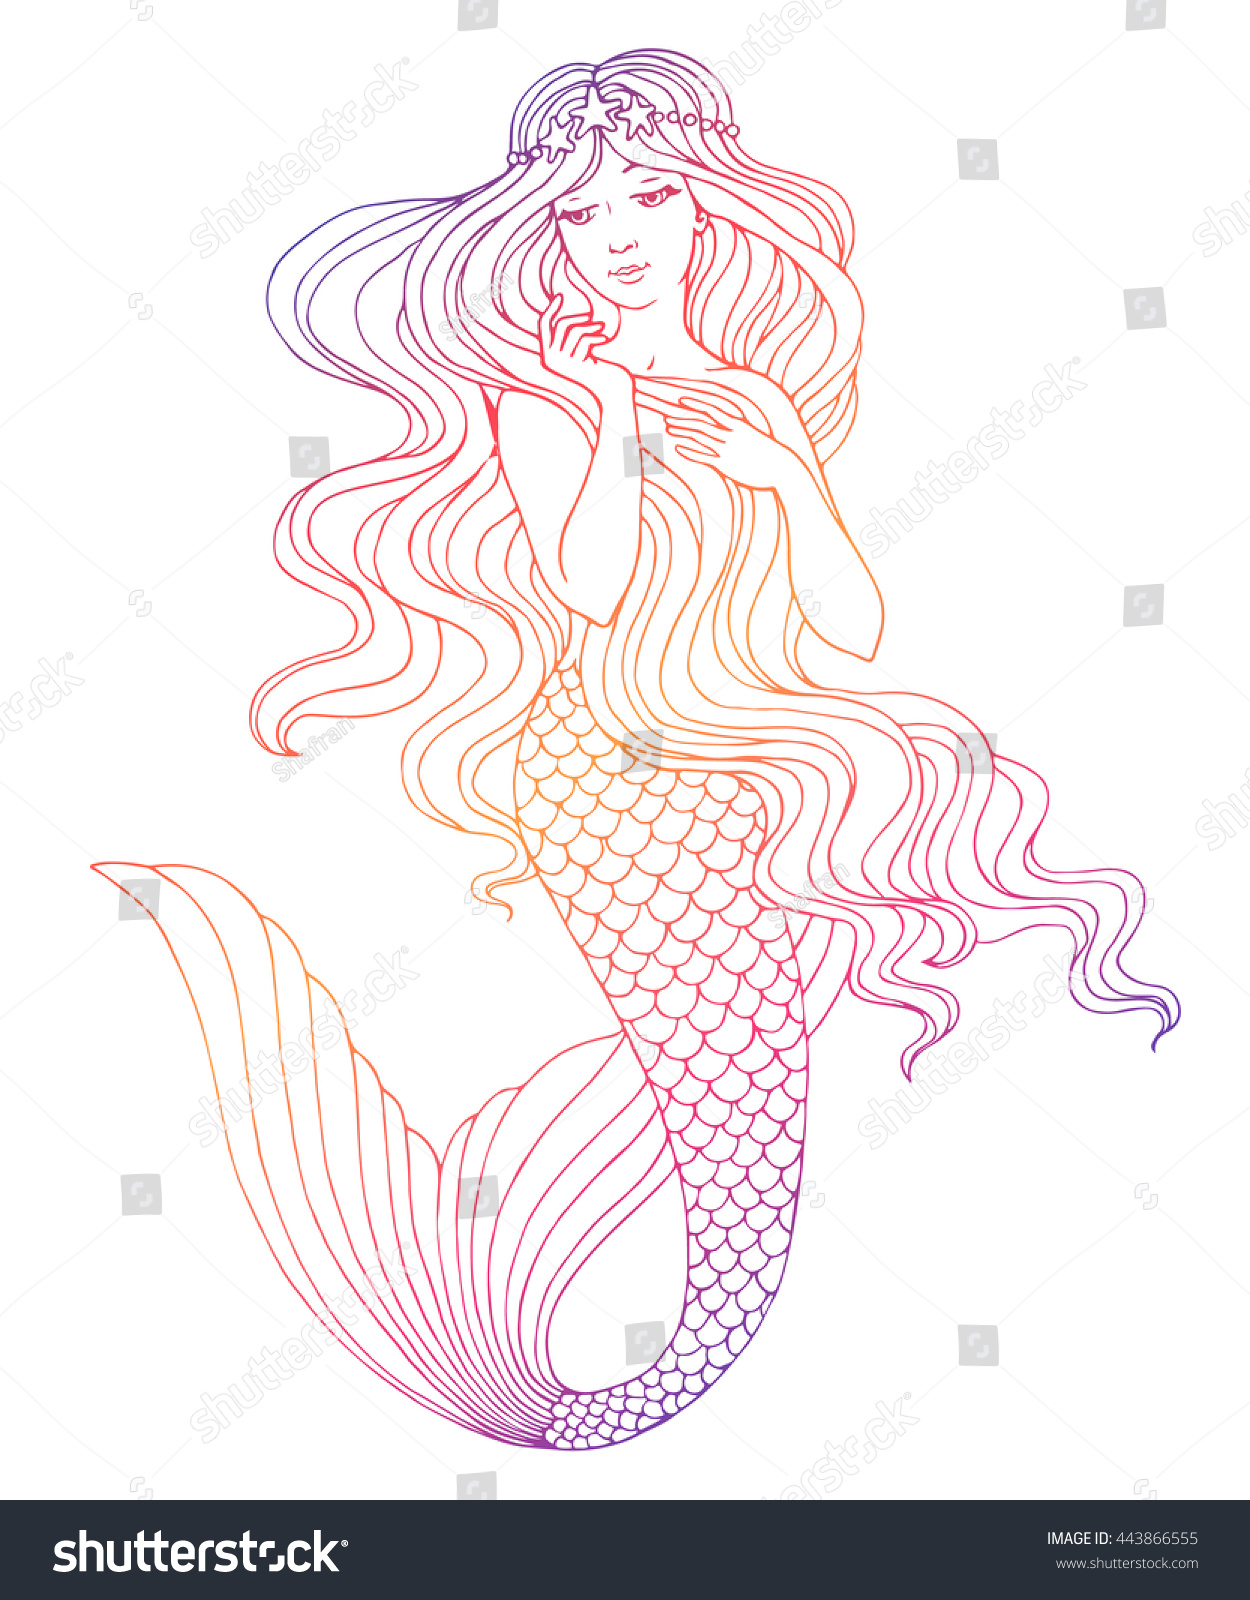 Hand painted mermaid watercolor vector silhouette stock vector - Hand Drawn Mermaid On White Background Linen Vector Illustration